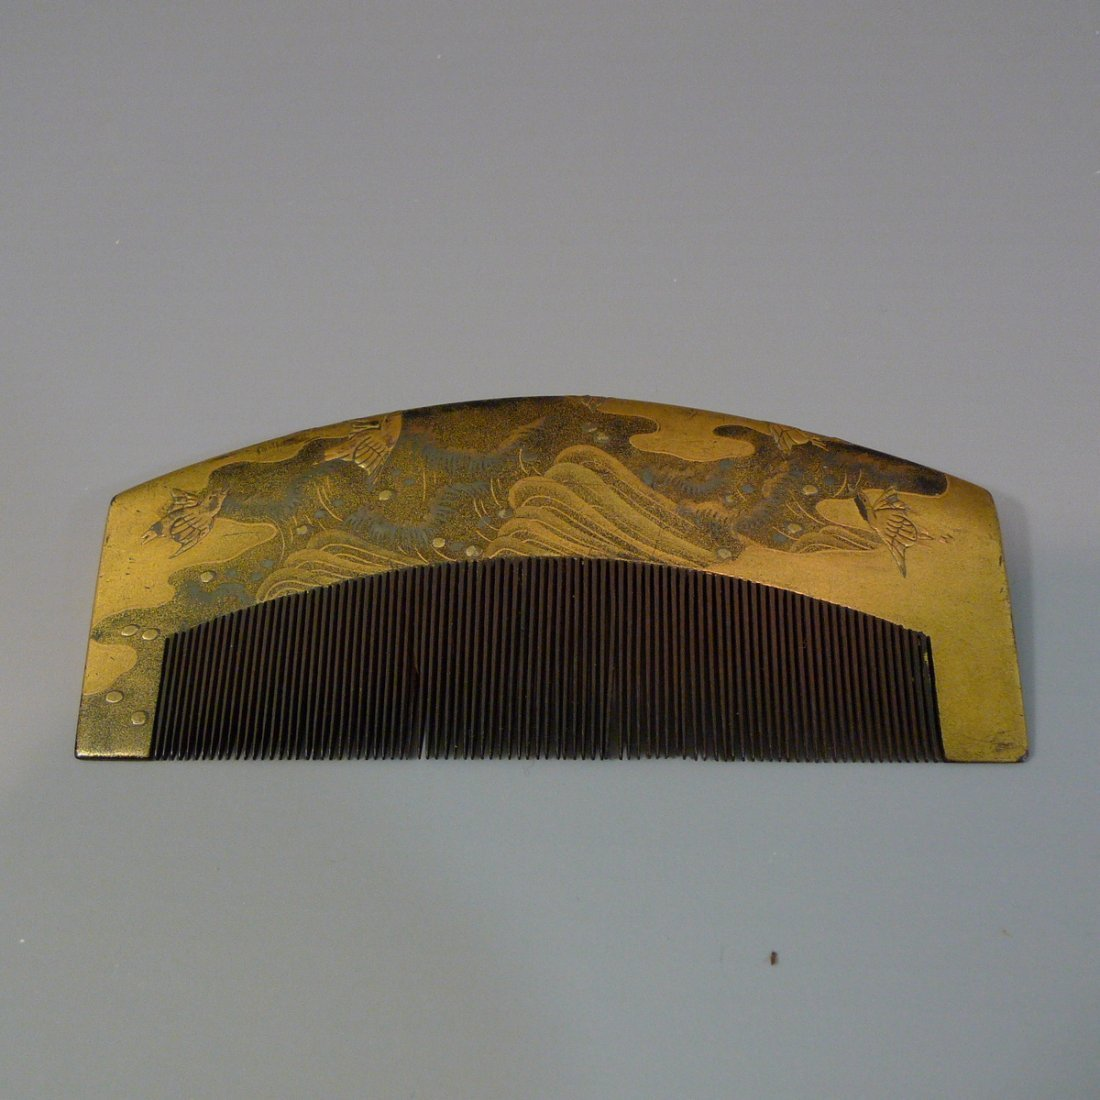 ANTIQUE JAPANESE LACQUER WOOD COMB - MEIJI PERIOD